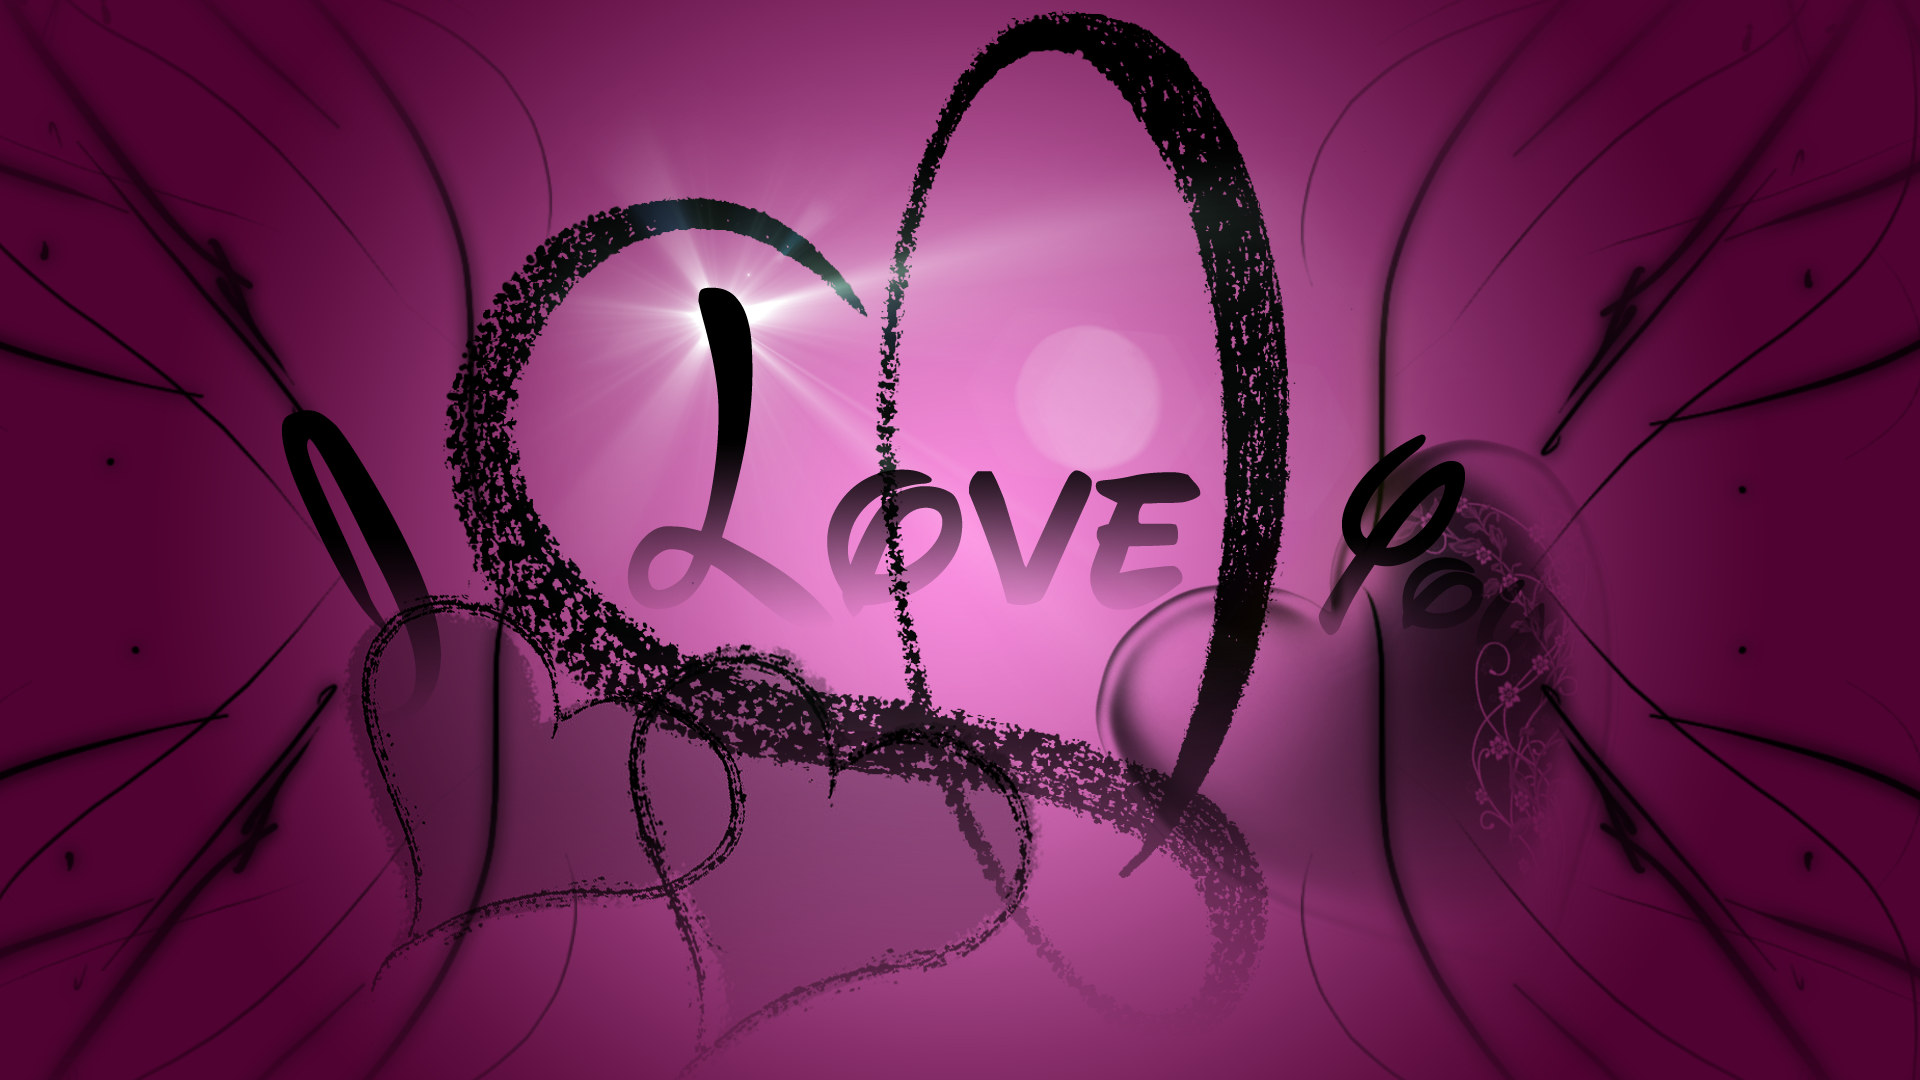 Love You Wallpaper Purple Love Heart Wallpaper Purple